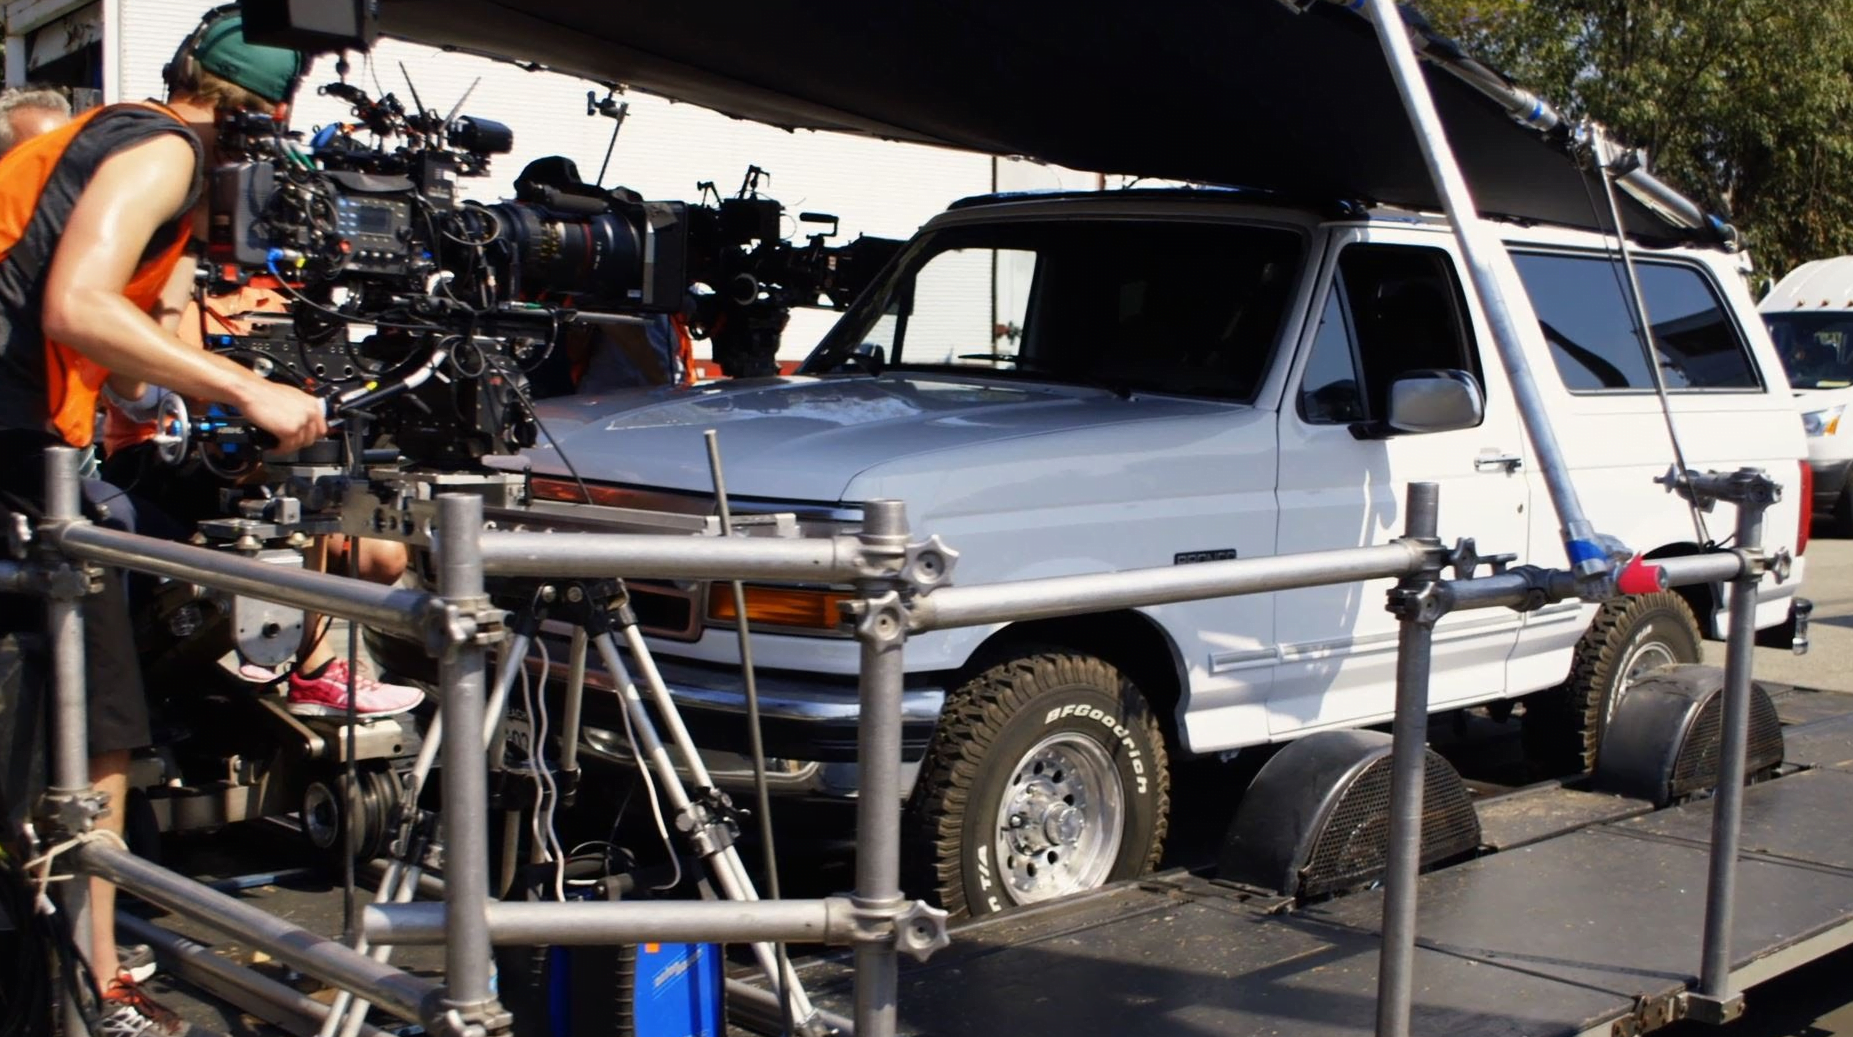 THE-PEOPLE-V-OJ-sIMPSON-filming-locations-405-bronco